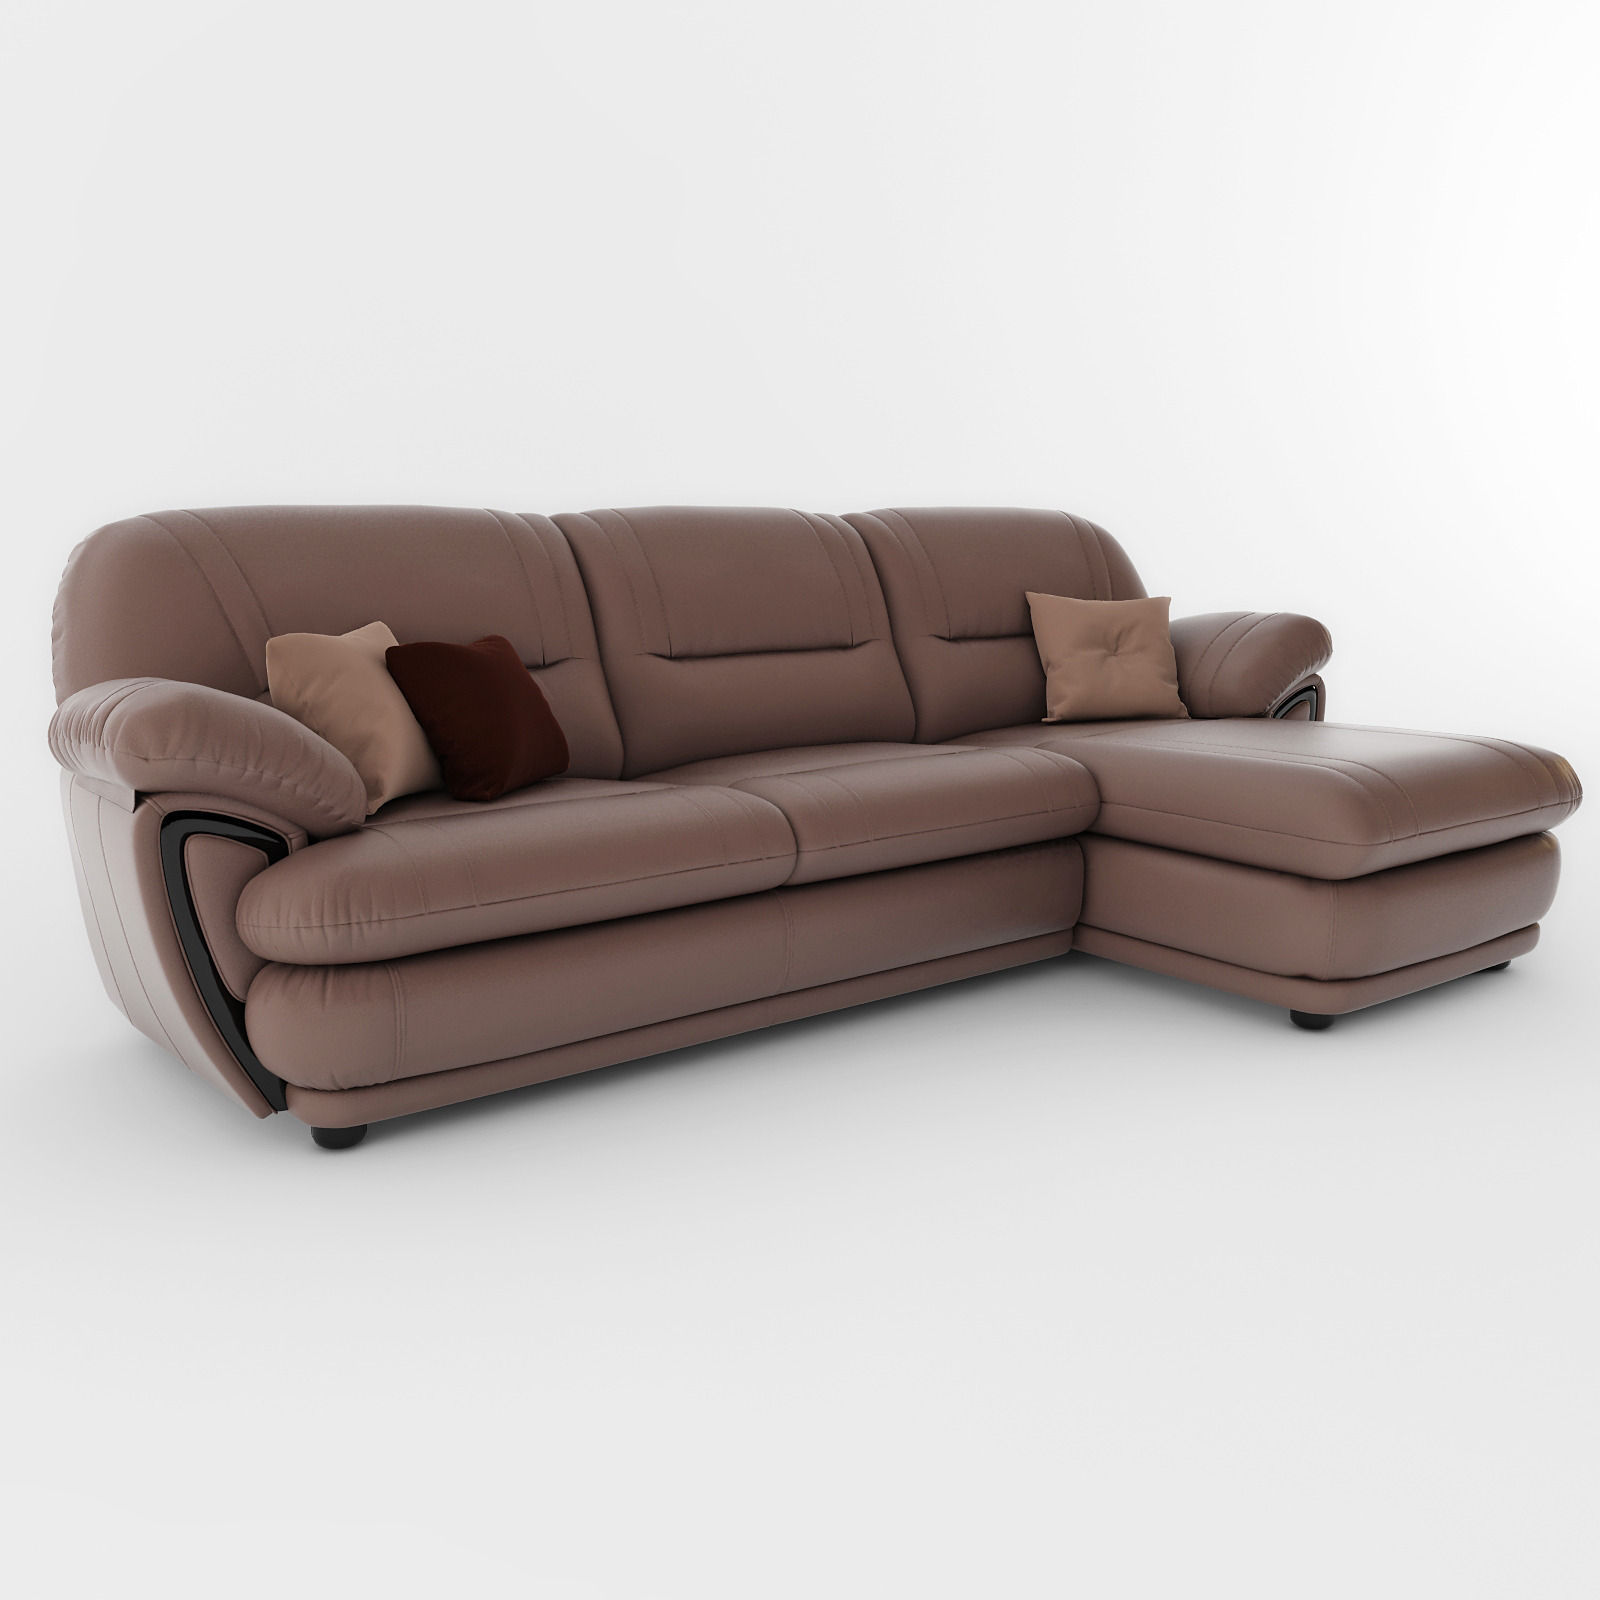 new model sofa china high quality low cost 33 3d max obj 3ds fbx mtl cgtrader